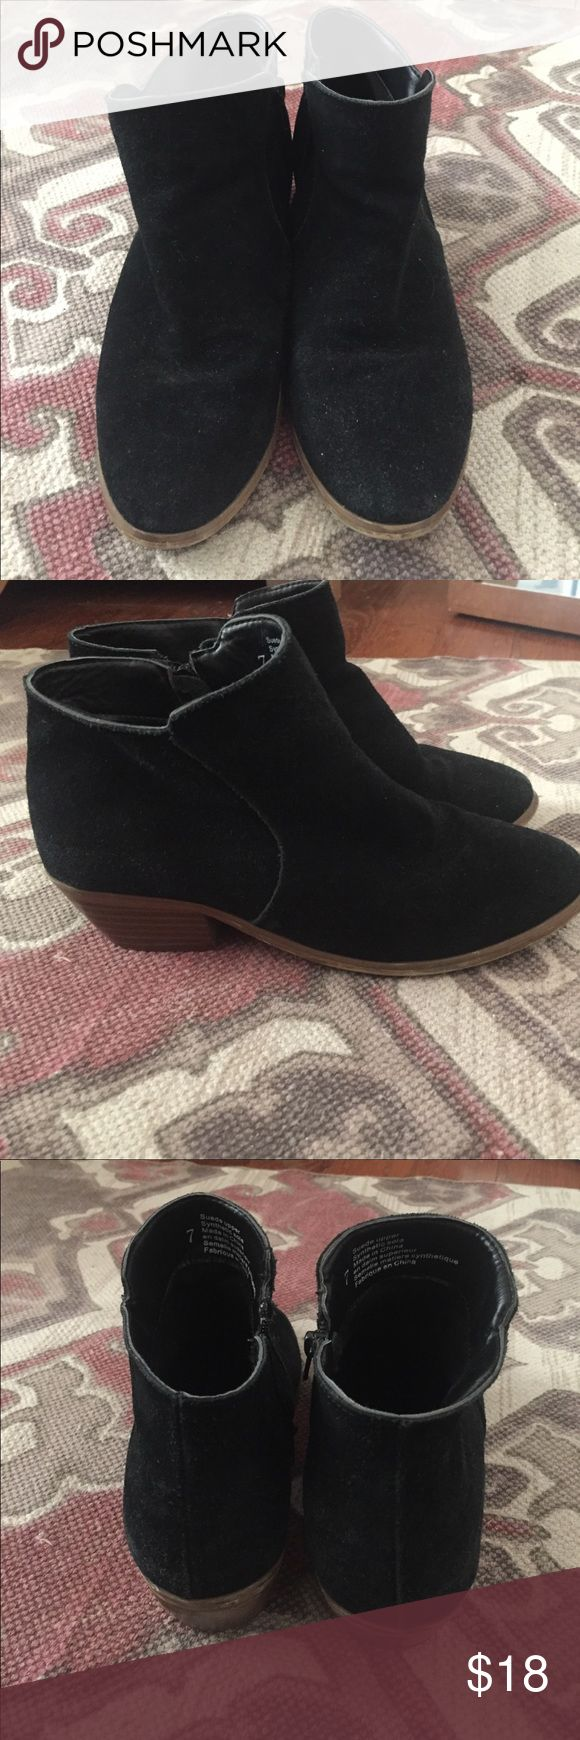 Black Suede Urban Outfitters Boots Pre-owned black suede ankle boots. Small heel, about 2 inches. Zips up on sides. Still has lots of life out of them. Brand is Ecote that is sold at urban outfitters. Urban Outfitters Shoes Ankle Boots & Booties